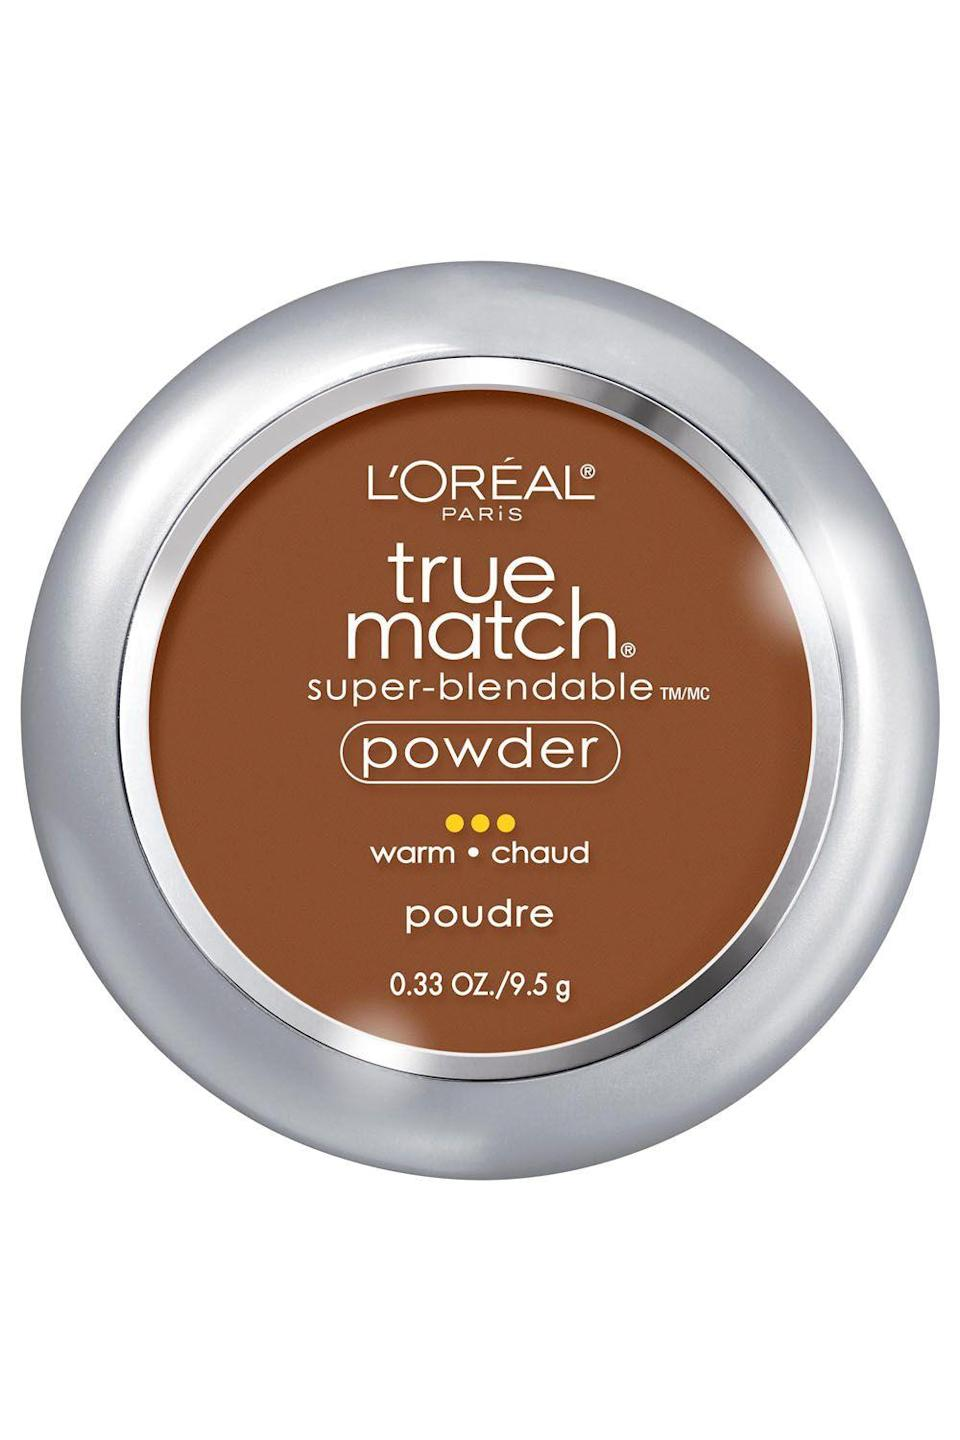 """<p>lorealparisusa.com</p><p><strong>$10.95</strong></p><p><a href=""""http://www.lorealparisusa.com/en/products/makeup/face/face-powder/true-match-powder.aspx"""" rel=""""nofollow noopener"""" target=""""_blank"""" data-ylk=""""slk:Shop Now"""" class=""""link rapid-noclick-resp"""">Shop Now</a></p><p>This drugstore setting powder is a godsend. There's 34 shades (way more than most brands), so you'll definitely be able to find your match. On top of that, it's mad <a href=""""https://www.cosmopolitan.com/style-beauty/beauty/how-to/a8001/blending-your-makeup/"""" rel=""""nofollow noopener"""" target=""""_blank"""" data-ylk=""""slk:easy to blend"""" class=""""link rapid-noclick-resp"""">easy to blend</a> and build—you won't have to worry about your face looking cakey or heavy. Plus, it has <strong>micro-pearls in the formula,</strong> which illuminate your skin for some extra glow.<br></p>"""